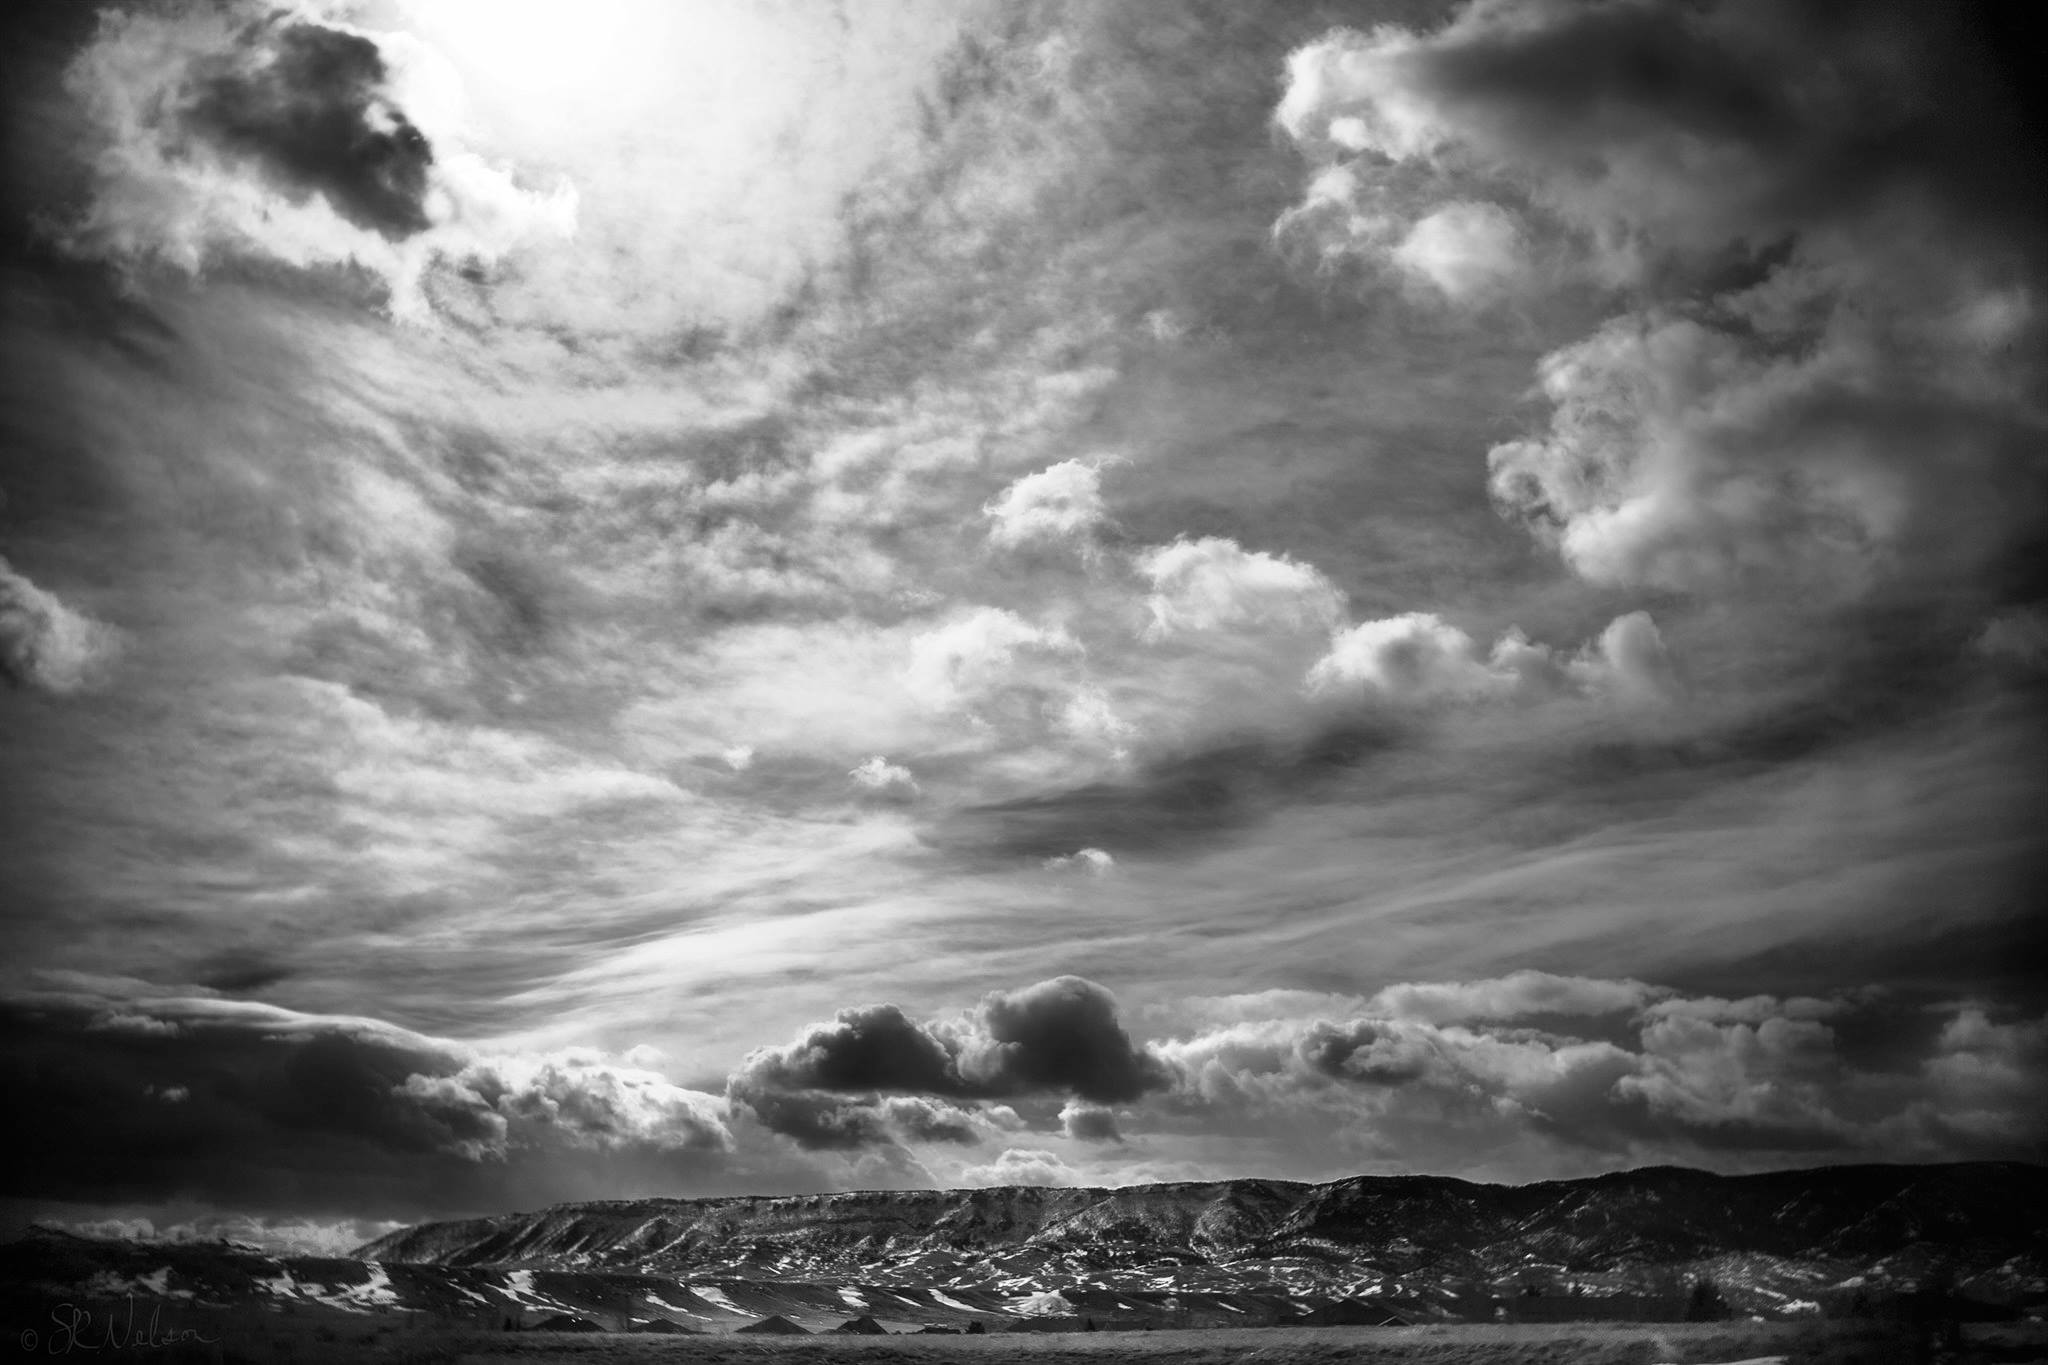 Wyoming landscape moody sky swirling clouds black and white photography lensbaby featured photos